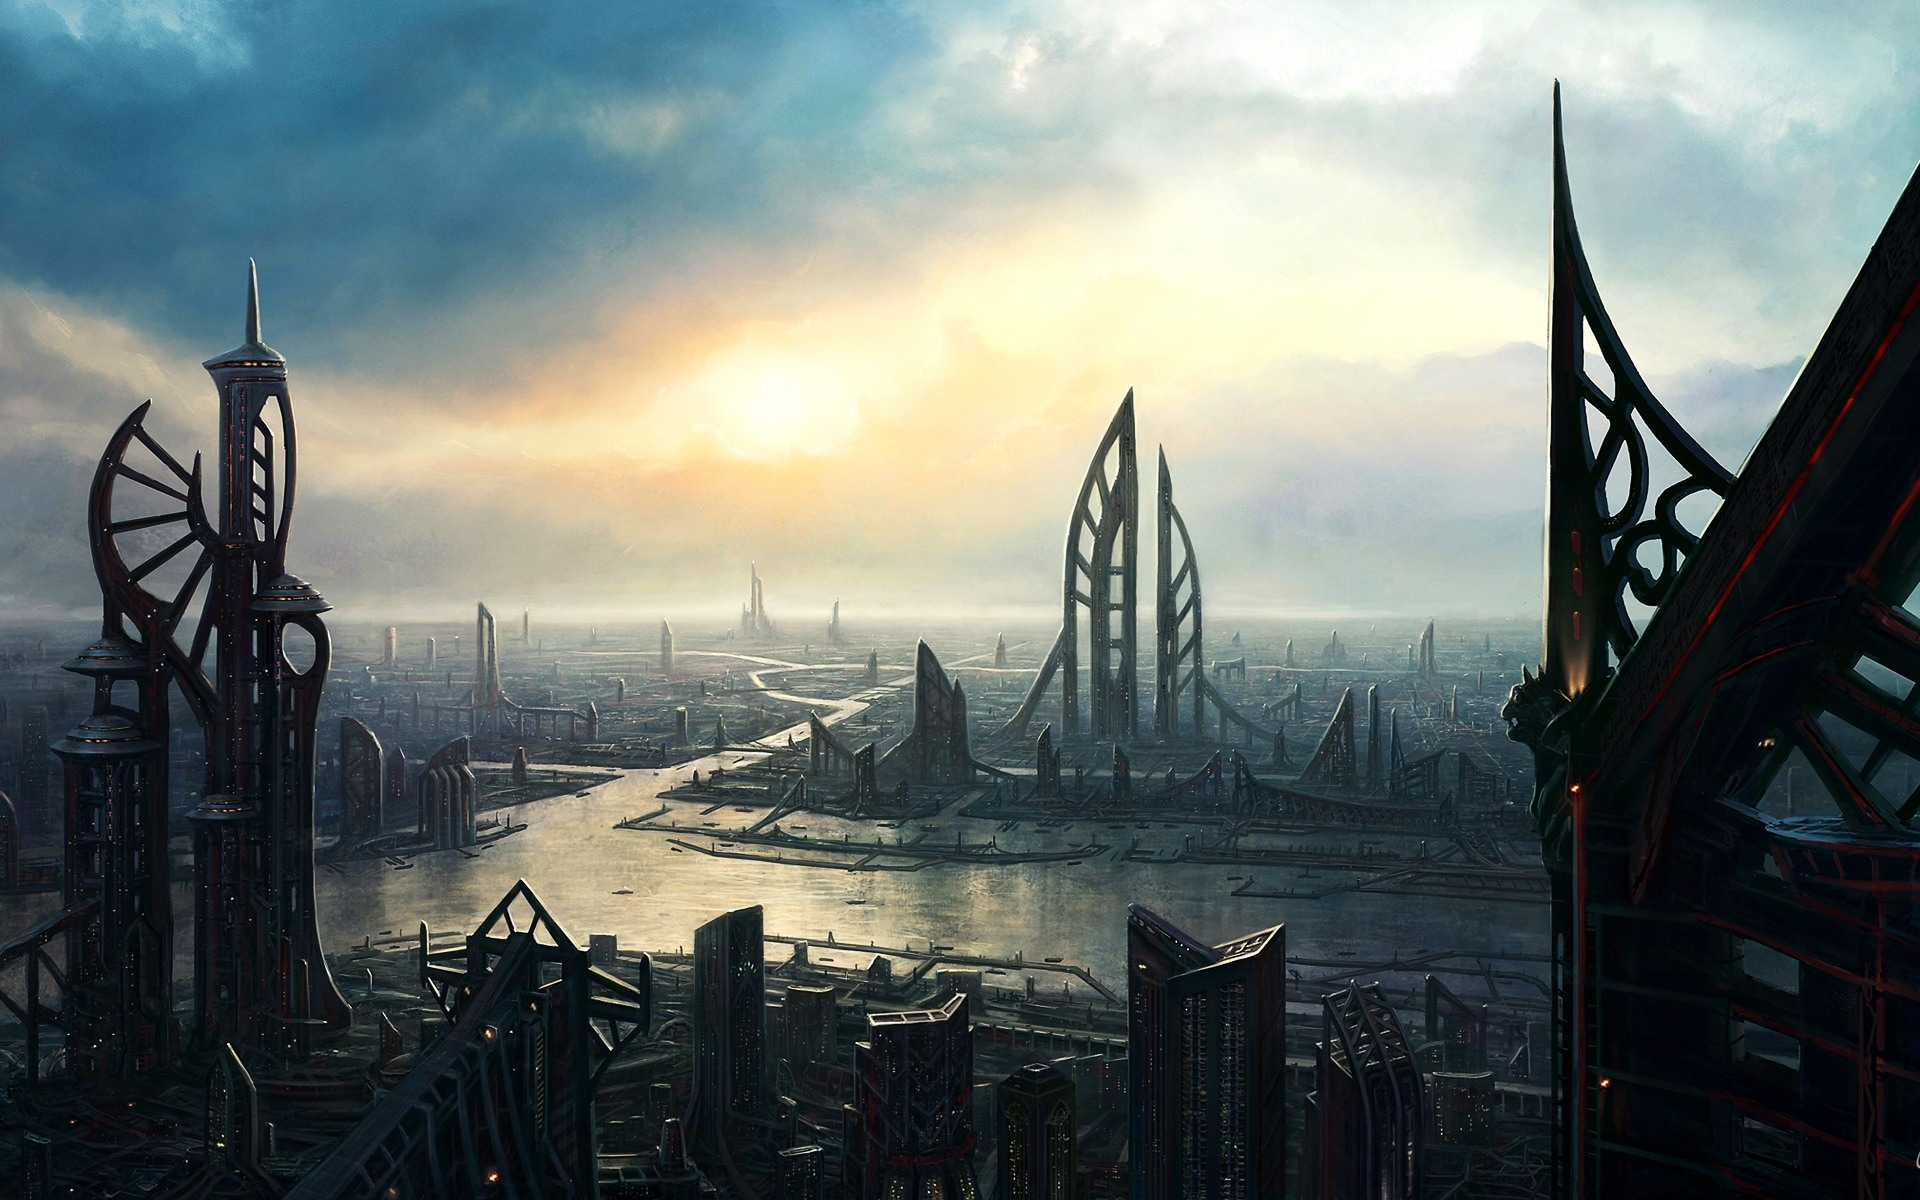 Fantasy cityscape future wallpaper dark  1